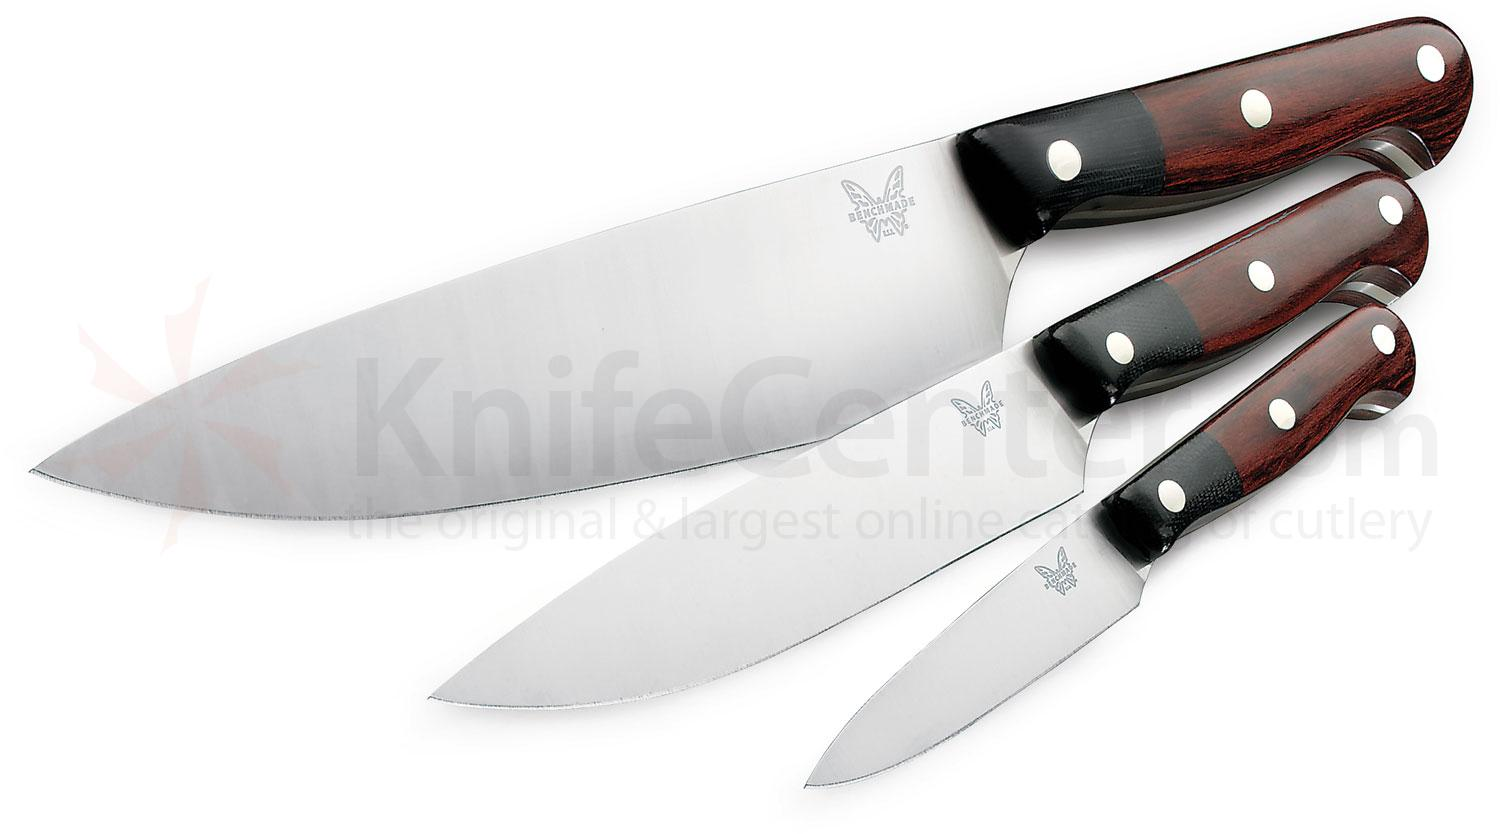 Uncategorized Benchmade Kitchen Knives benchmade model 4501 gold class prestigedges 3 piece kitchen knife set